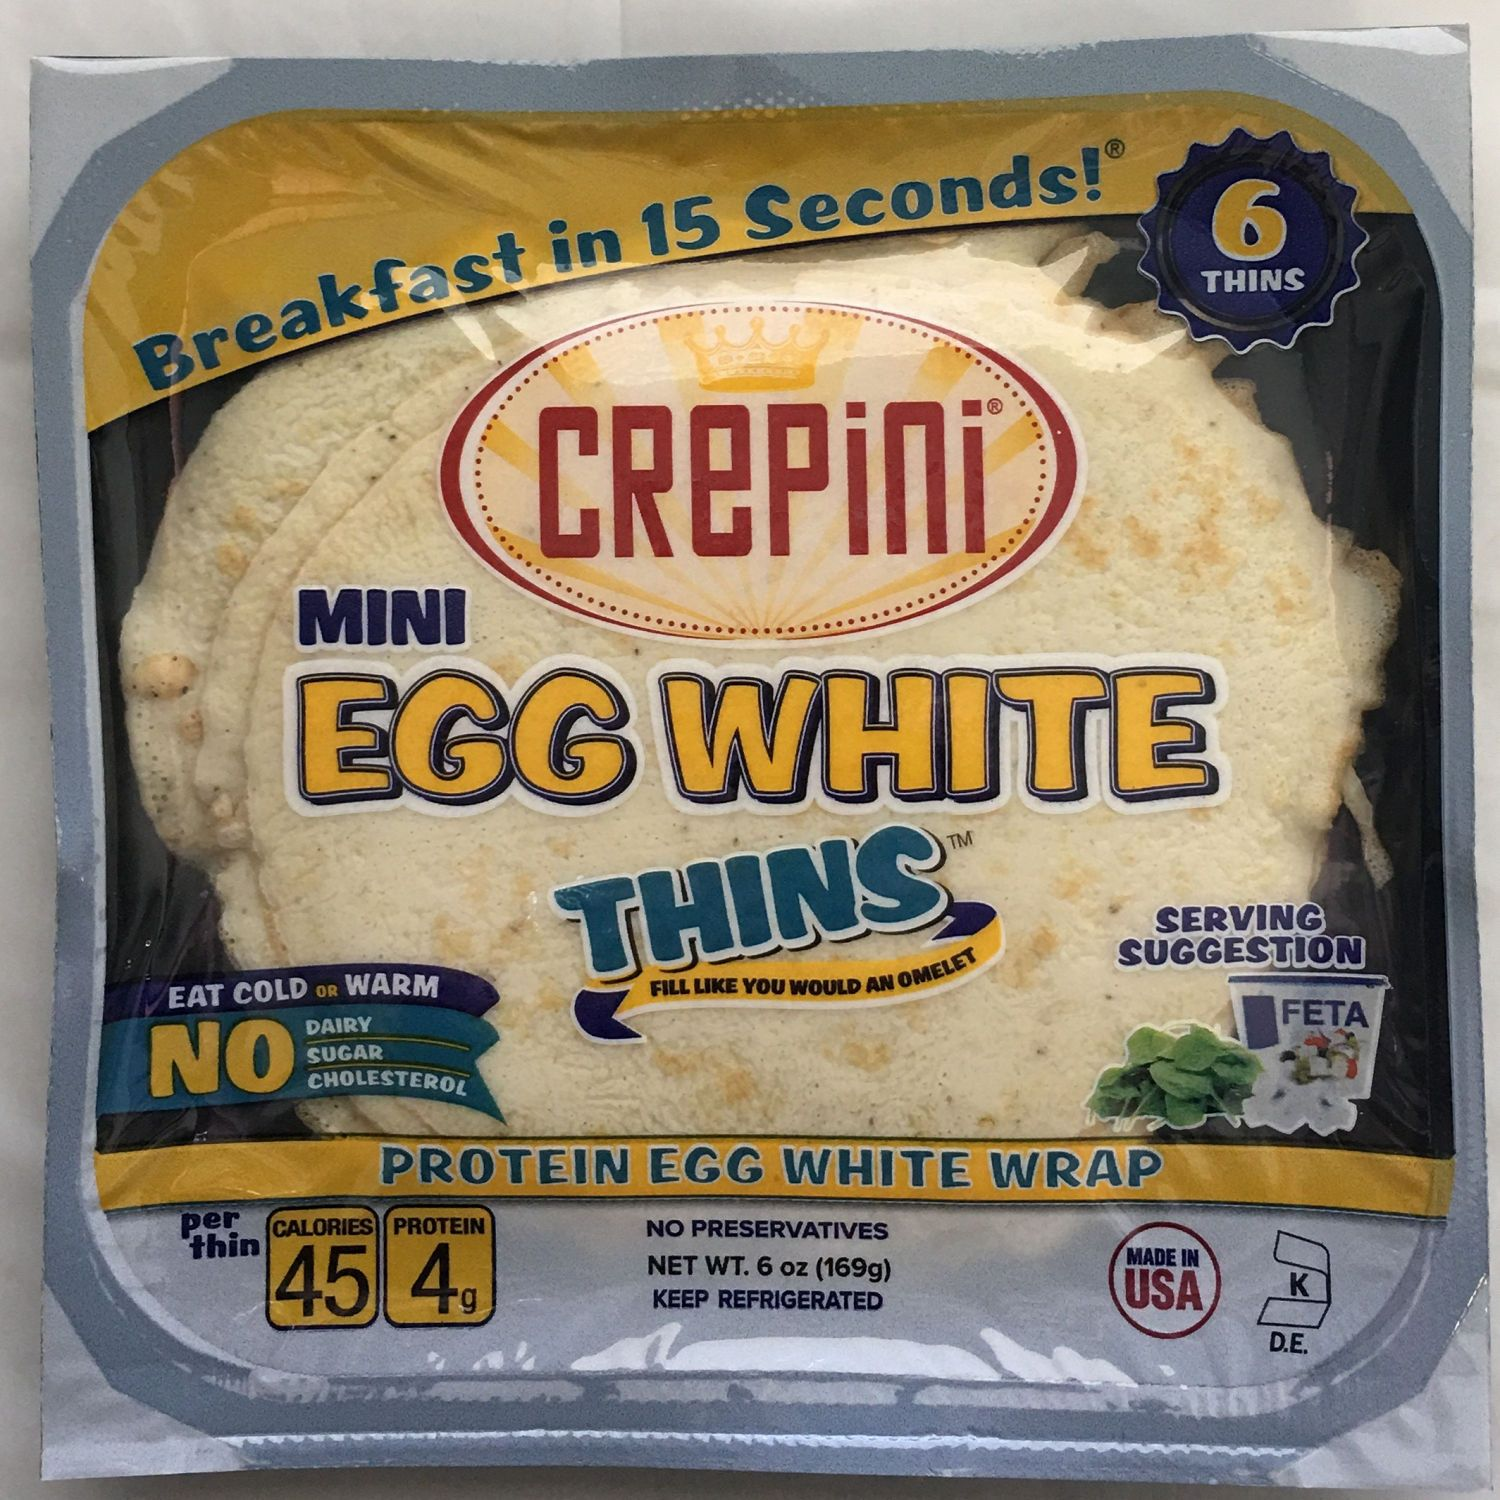 Walmart Is Selling Egg White Breakfast Wraps Crepini Egg White Thins